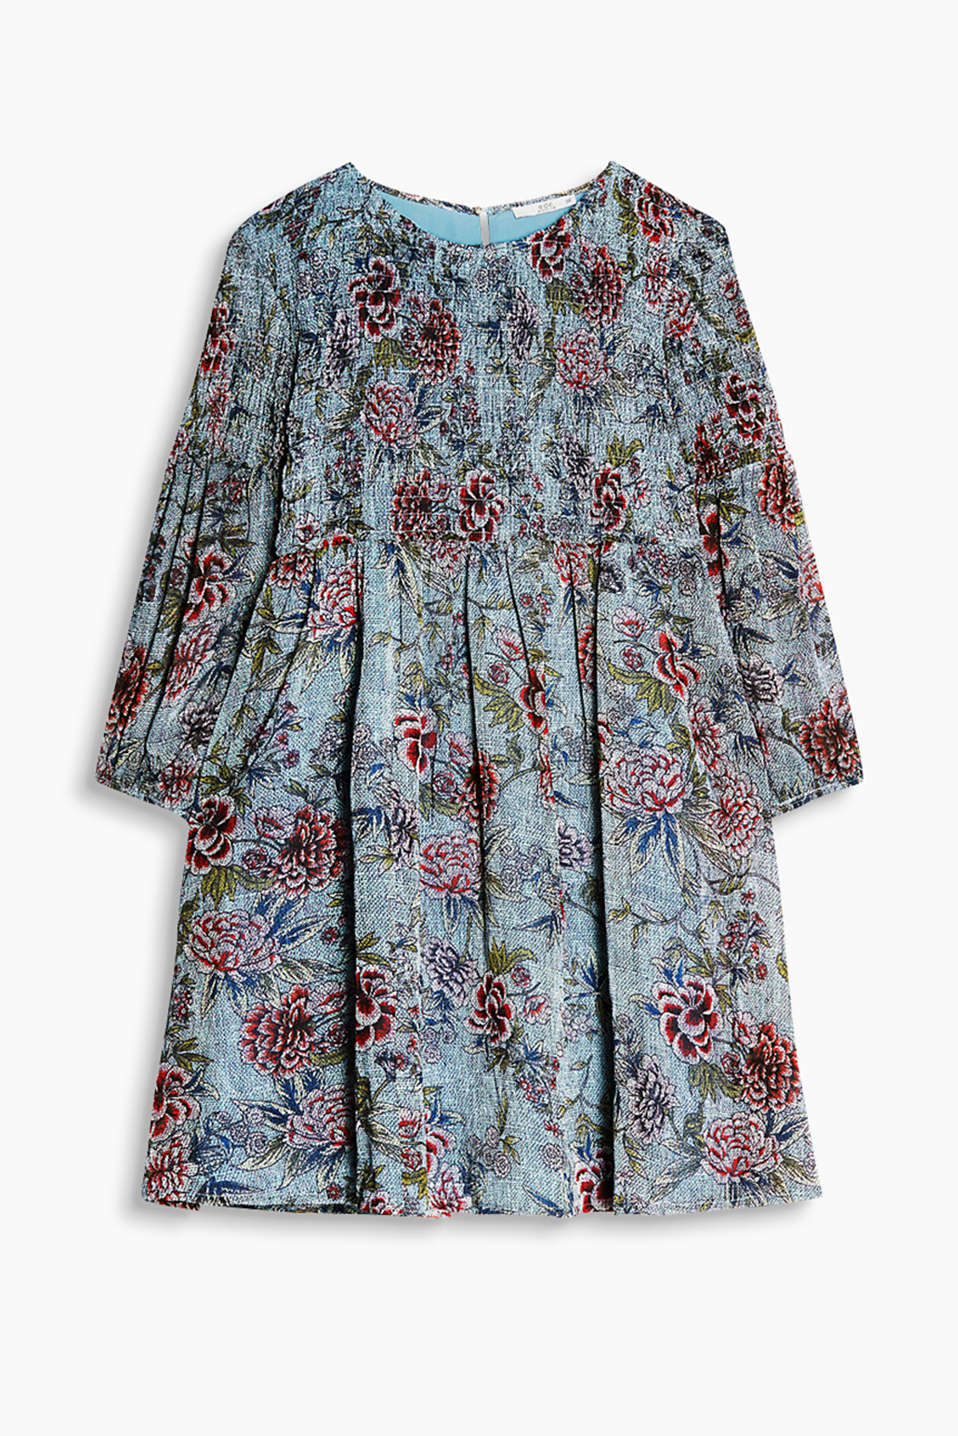 Flared chiffon dress with floral print, a smocked upper section and three-quarter length sleeves